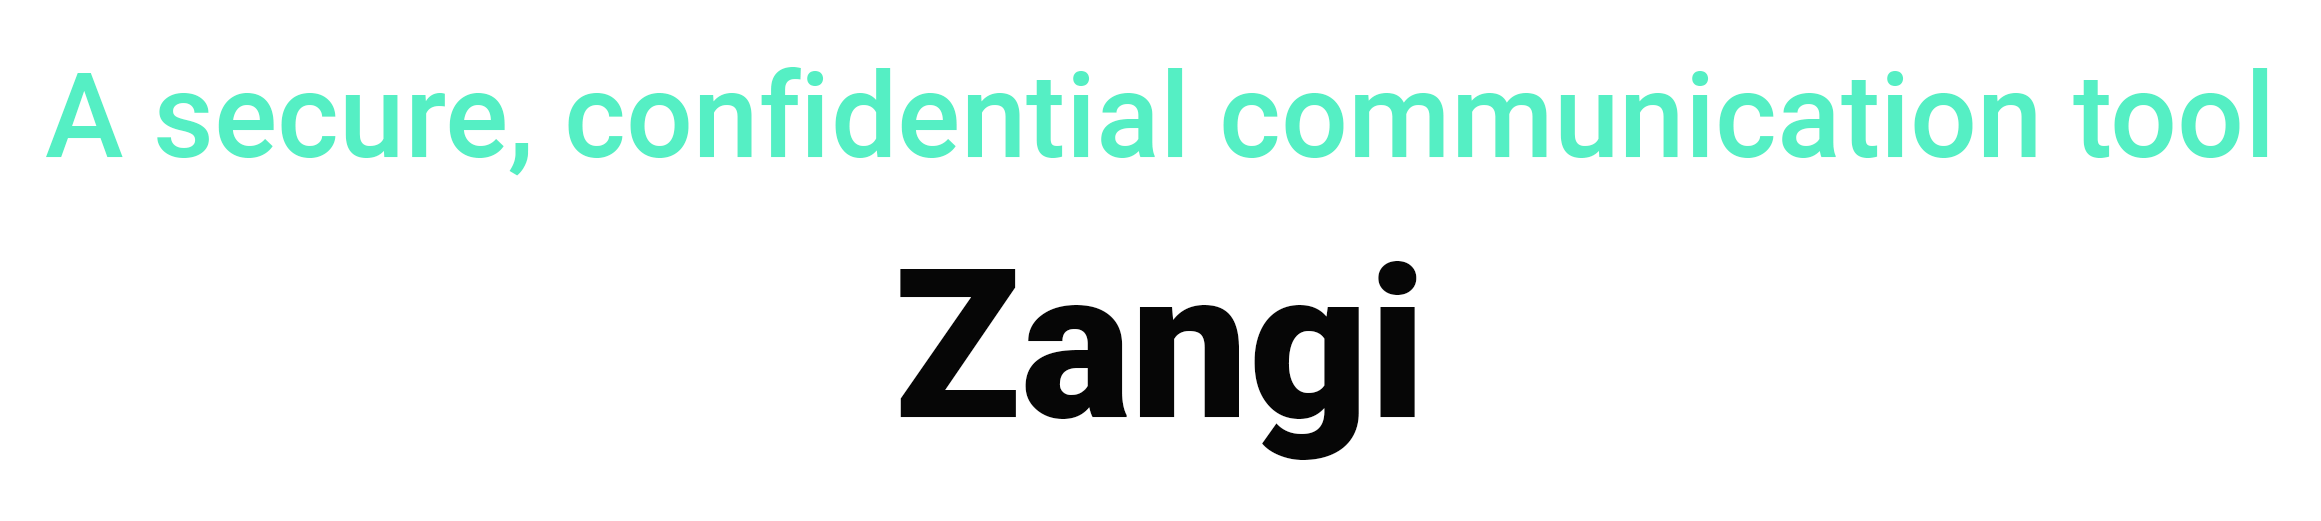 A secure, confidential communication tool zangi virtual team management